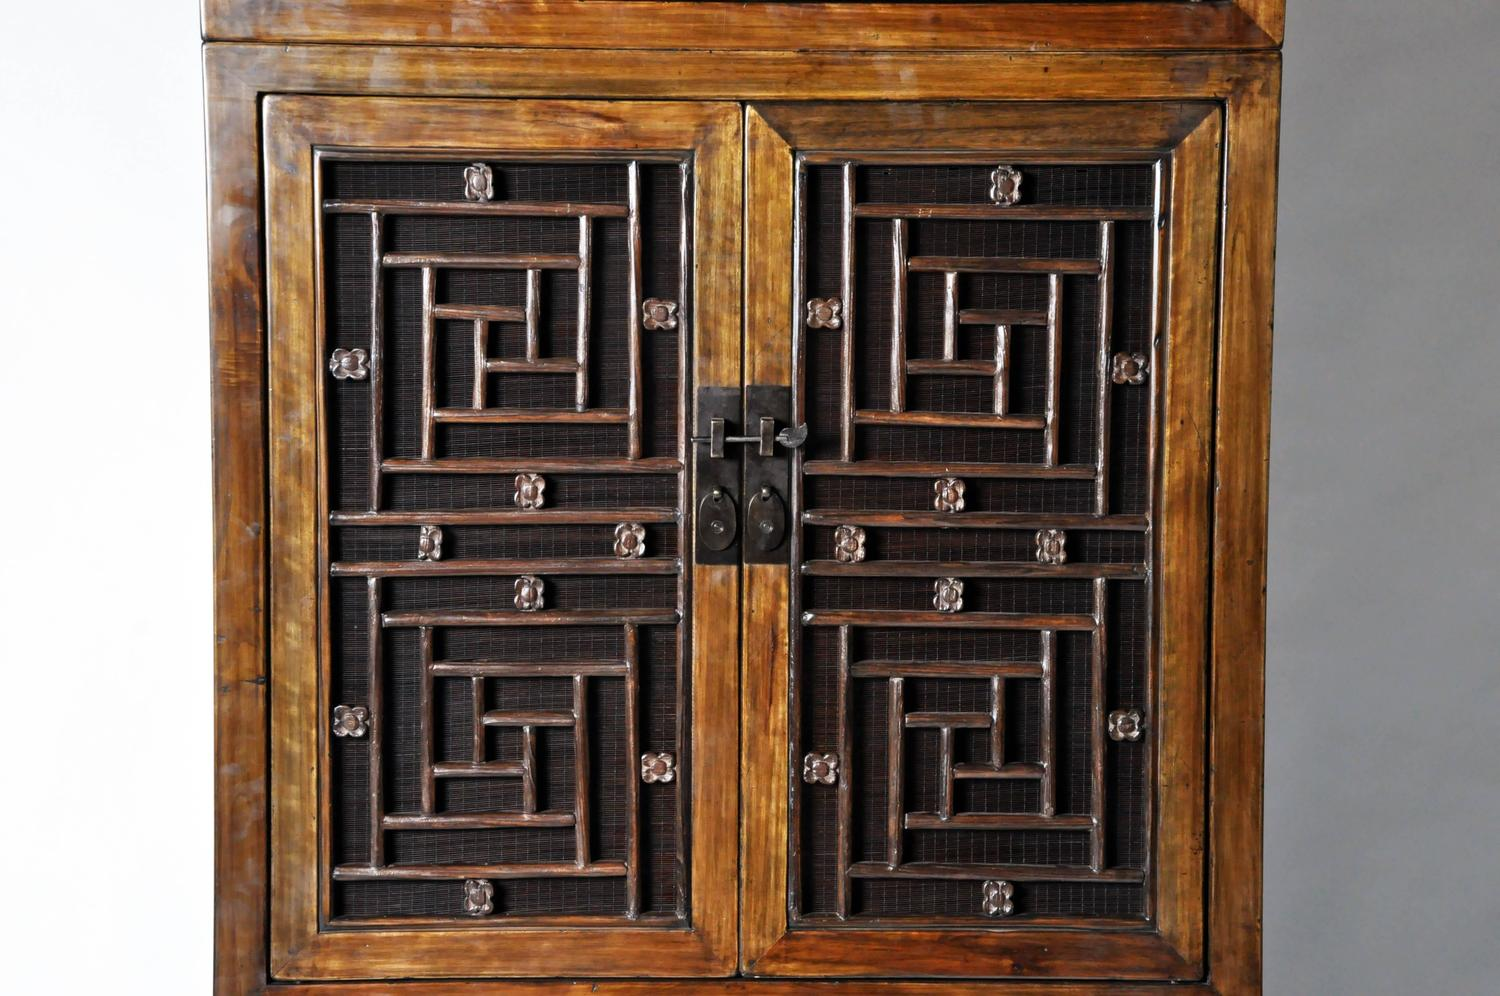 Tall chinese lattice door cabinet with restoration for for Chinese furniture restoration